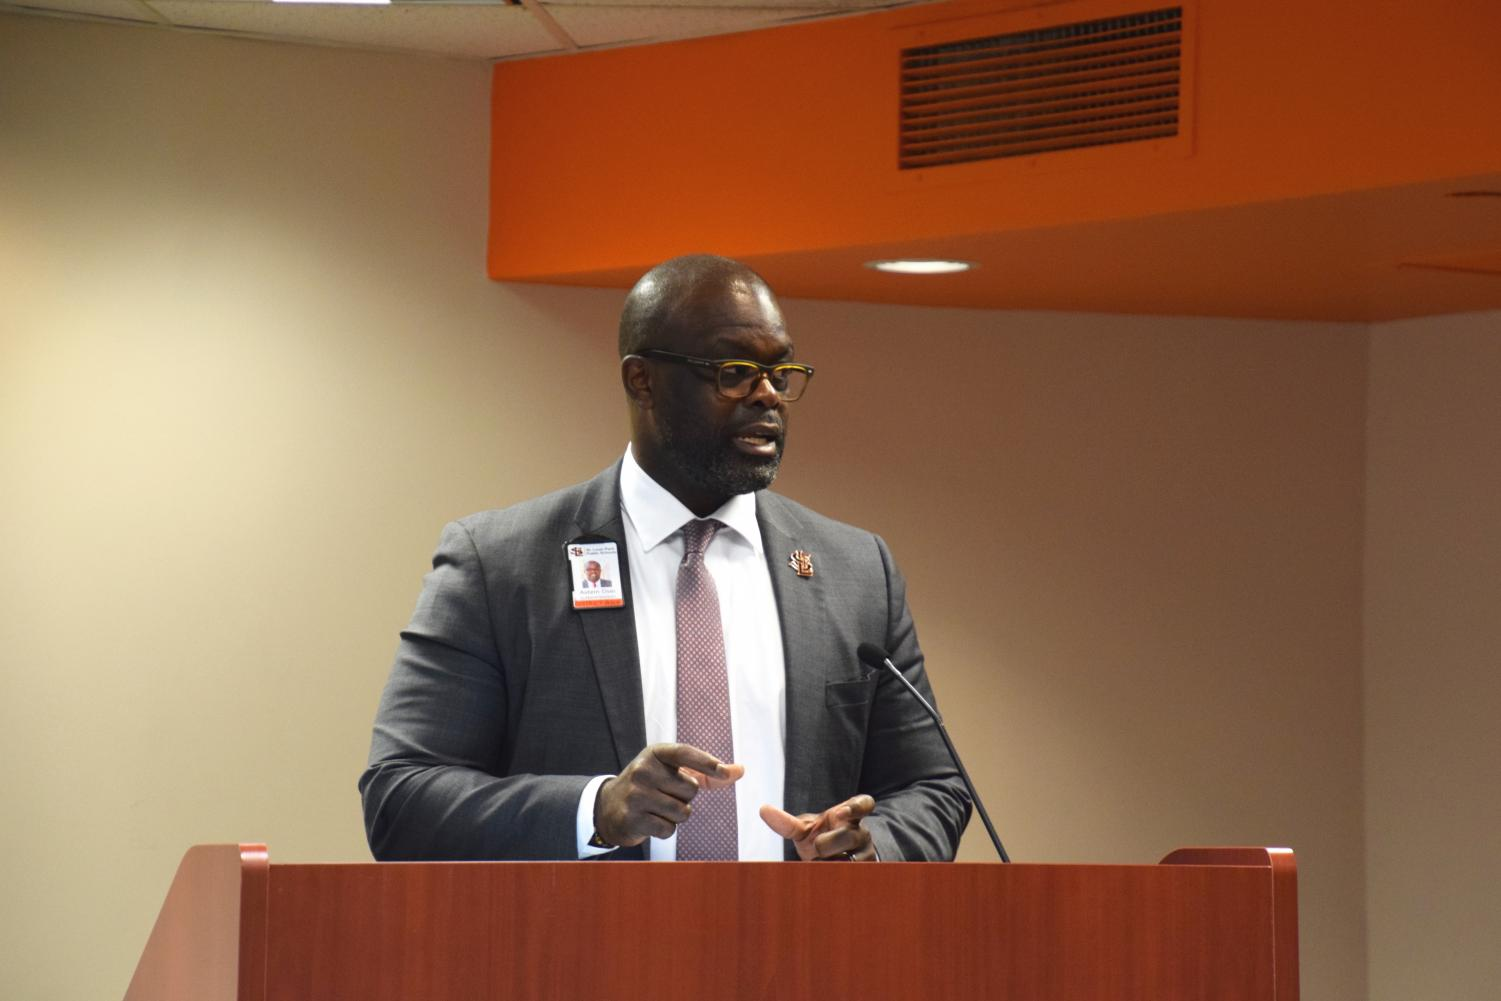 Superintendent Astein Osei speaks in front of school board members Sept. 25. Osei spoke about the $100.9 million referendum and other topics relating to the Park school district.